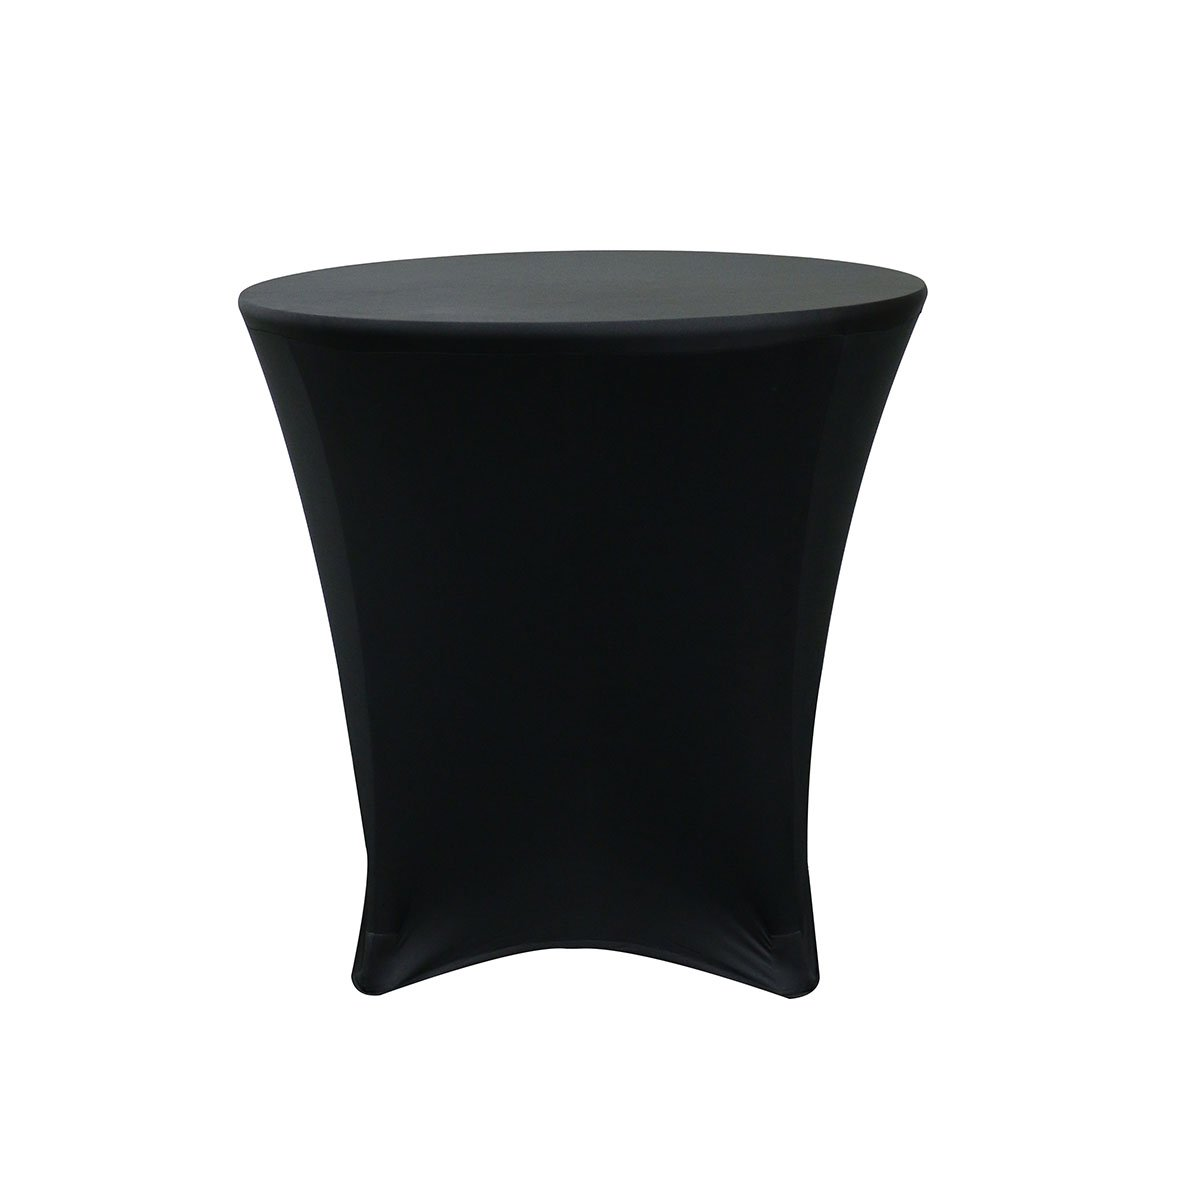 Your Chair Covers - 30 x 30 inch Lowboy Cocktail Round Stretch Spandex Table Cover Black